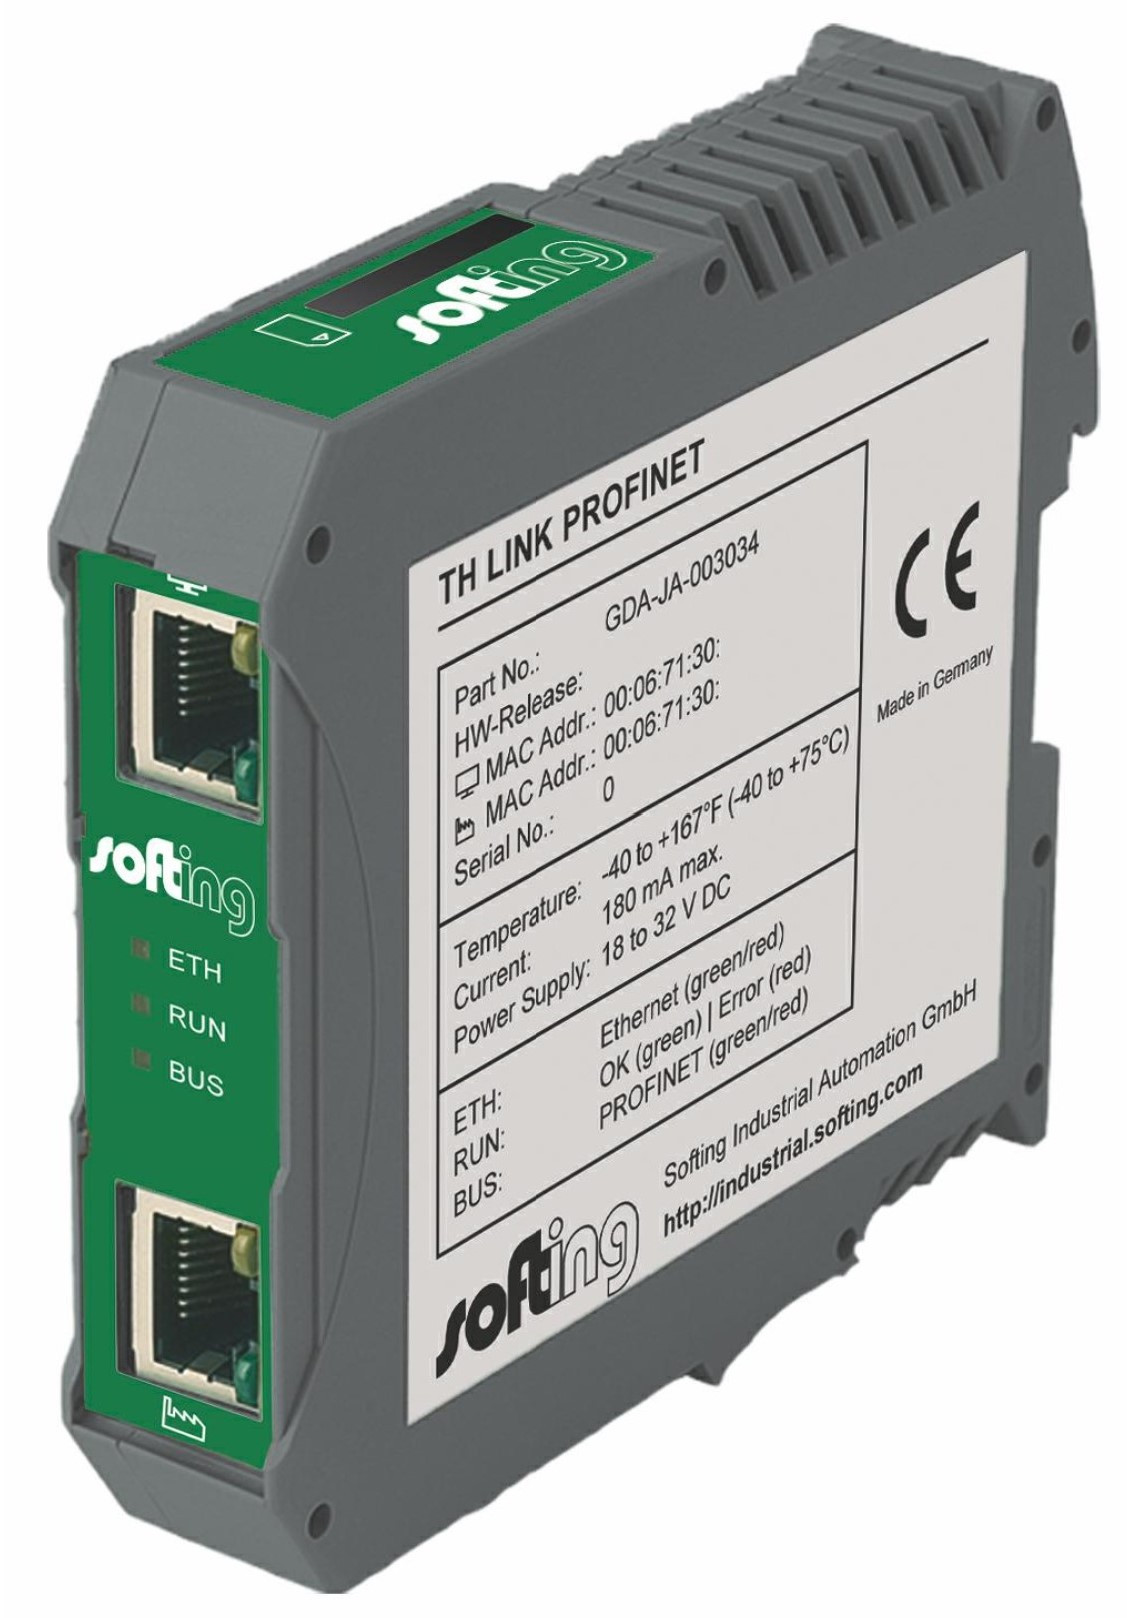 TH LINK PROFINET